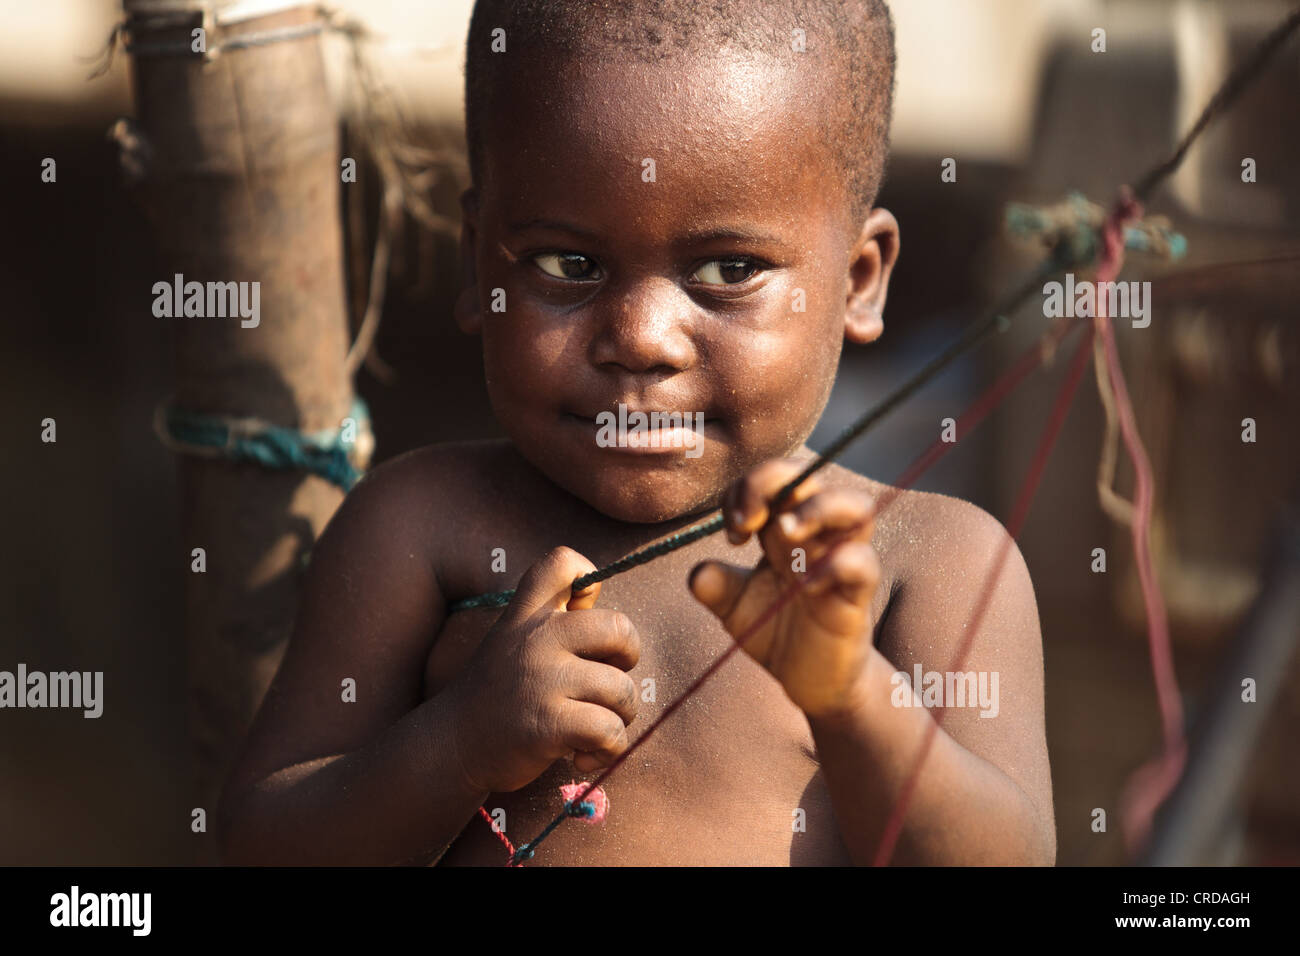 A boy plays with strings in the West Point slum of Monrovia, Montserrado county, Liberia on Monday April 2, 2012. - Stock Image